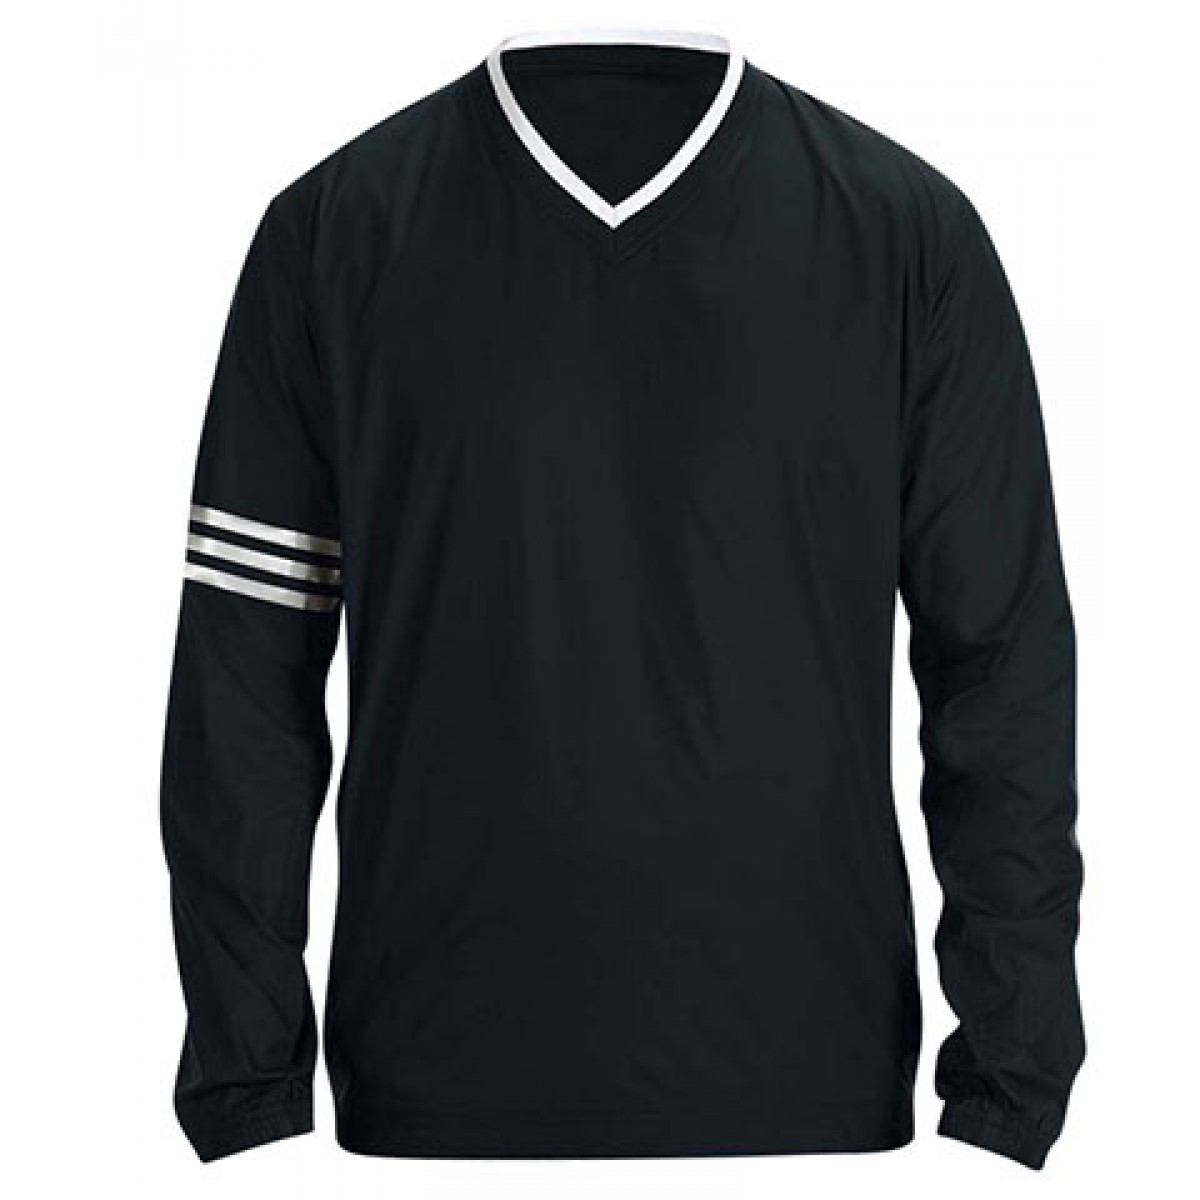 Adidas ClimaLite V-Neck Long Sleeve Wind Shirt-Black-M